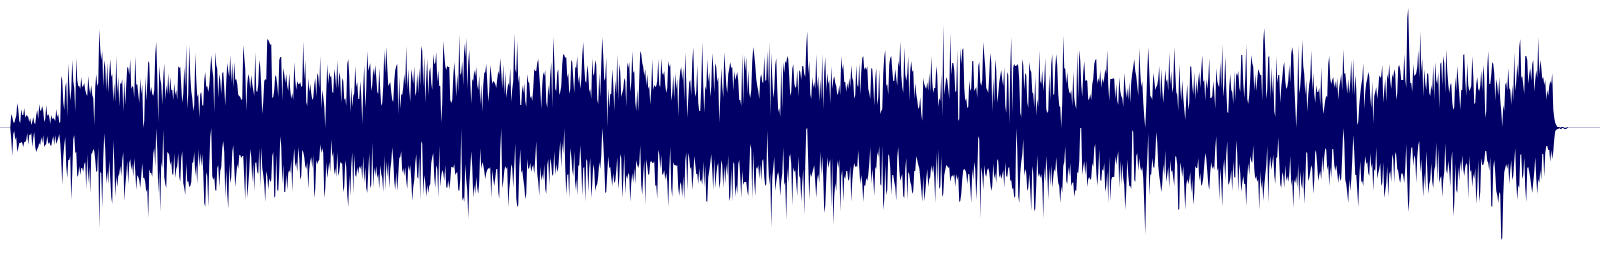 waveform of track #112951